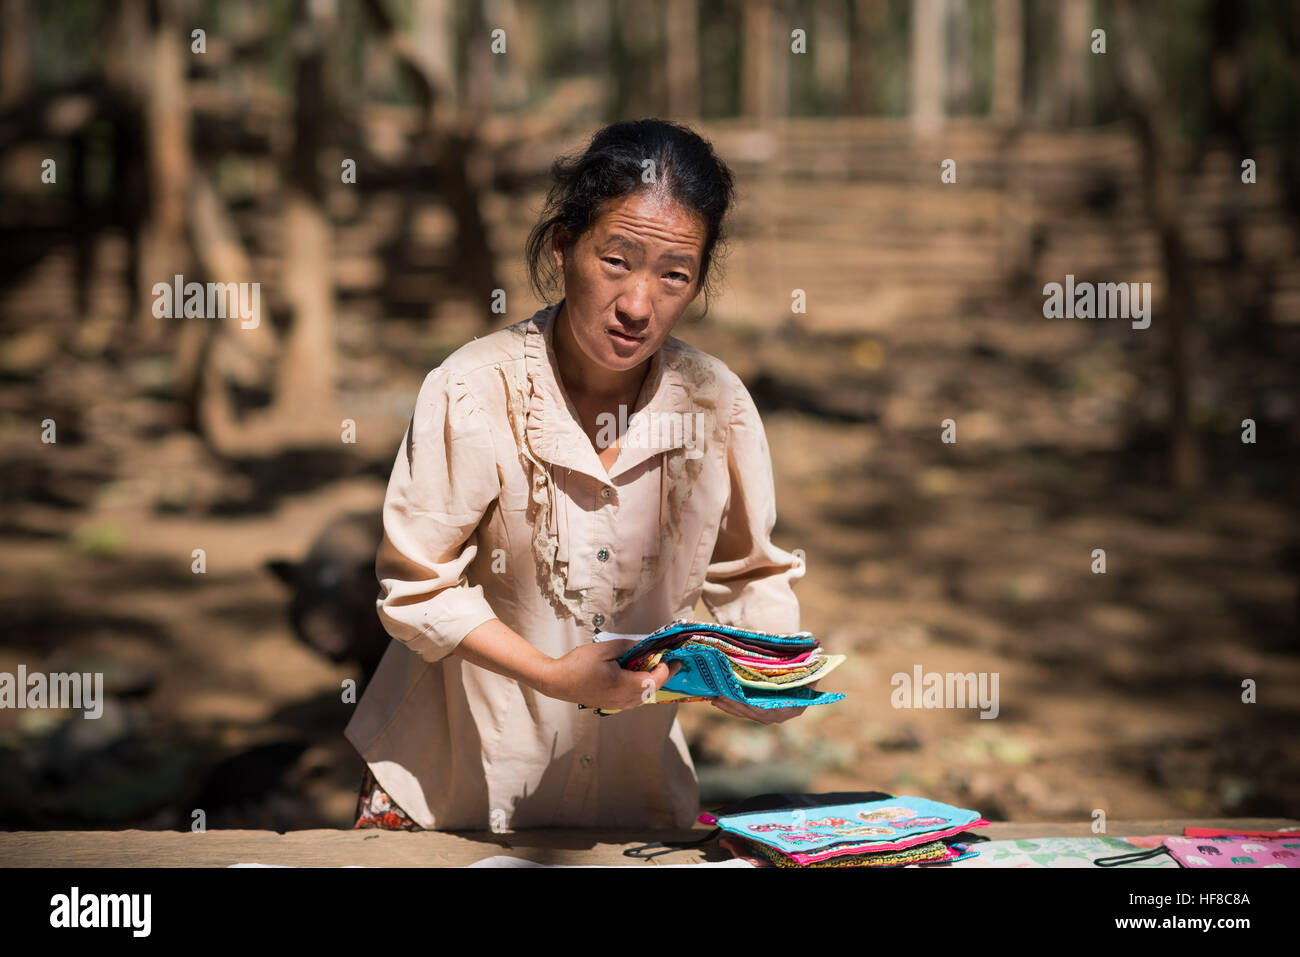 Ban Nongphou, Laos. 28th Dec, 2016. The Hmong are an ethnic group from the mountainous regions of China, Myanmar, Stock Photo